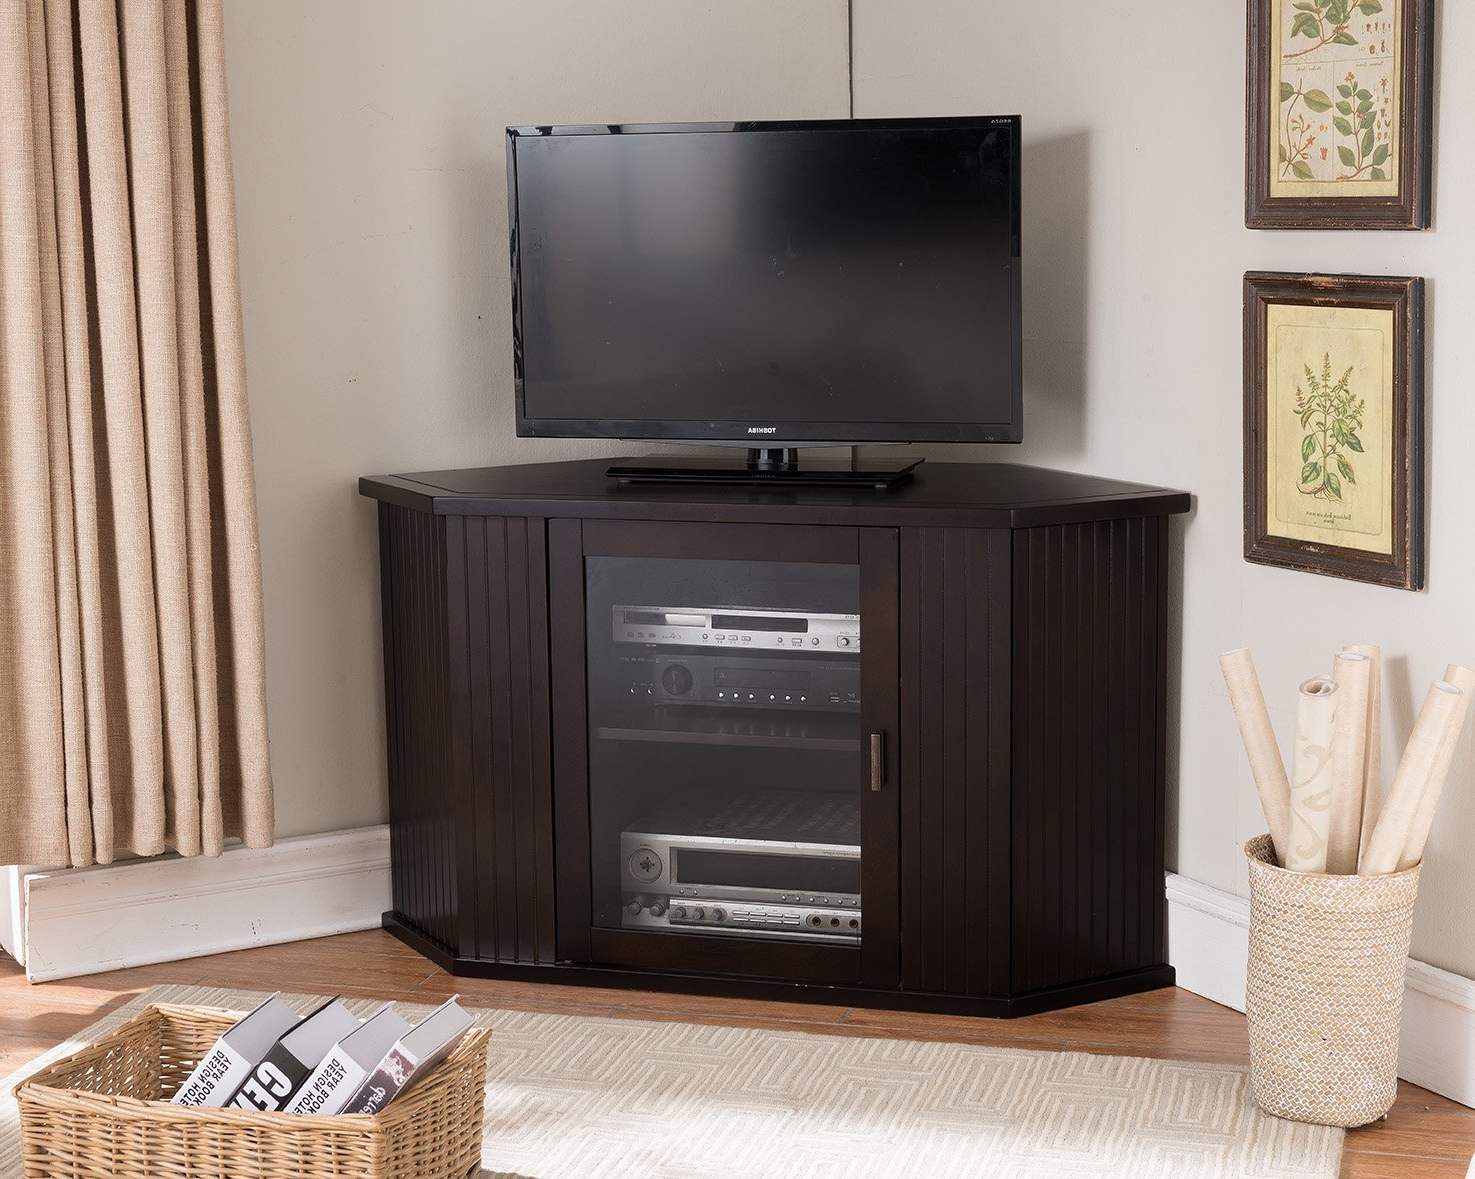 Favorite Cheap Bdi Tv Cabinets, Find Bdi Tv Cabinets Deals On Line At Alibaba Inside Tv Cabinets With Storage (View 20 of 20)